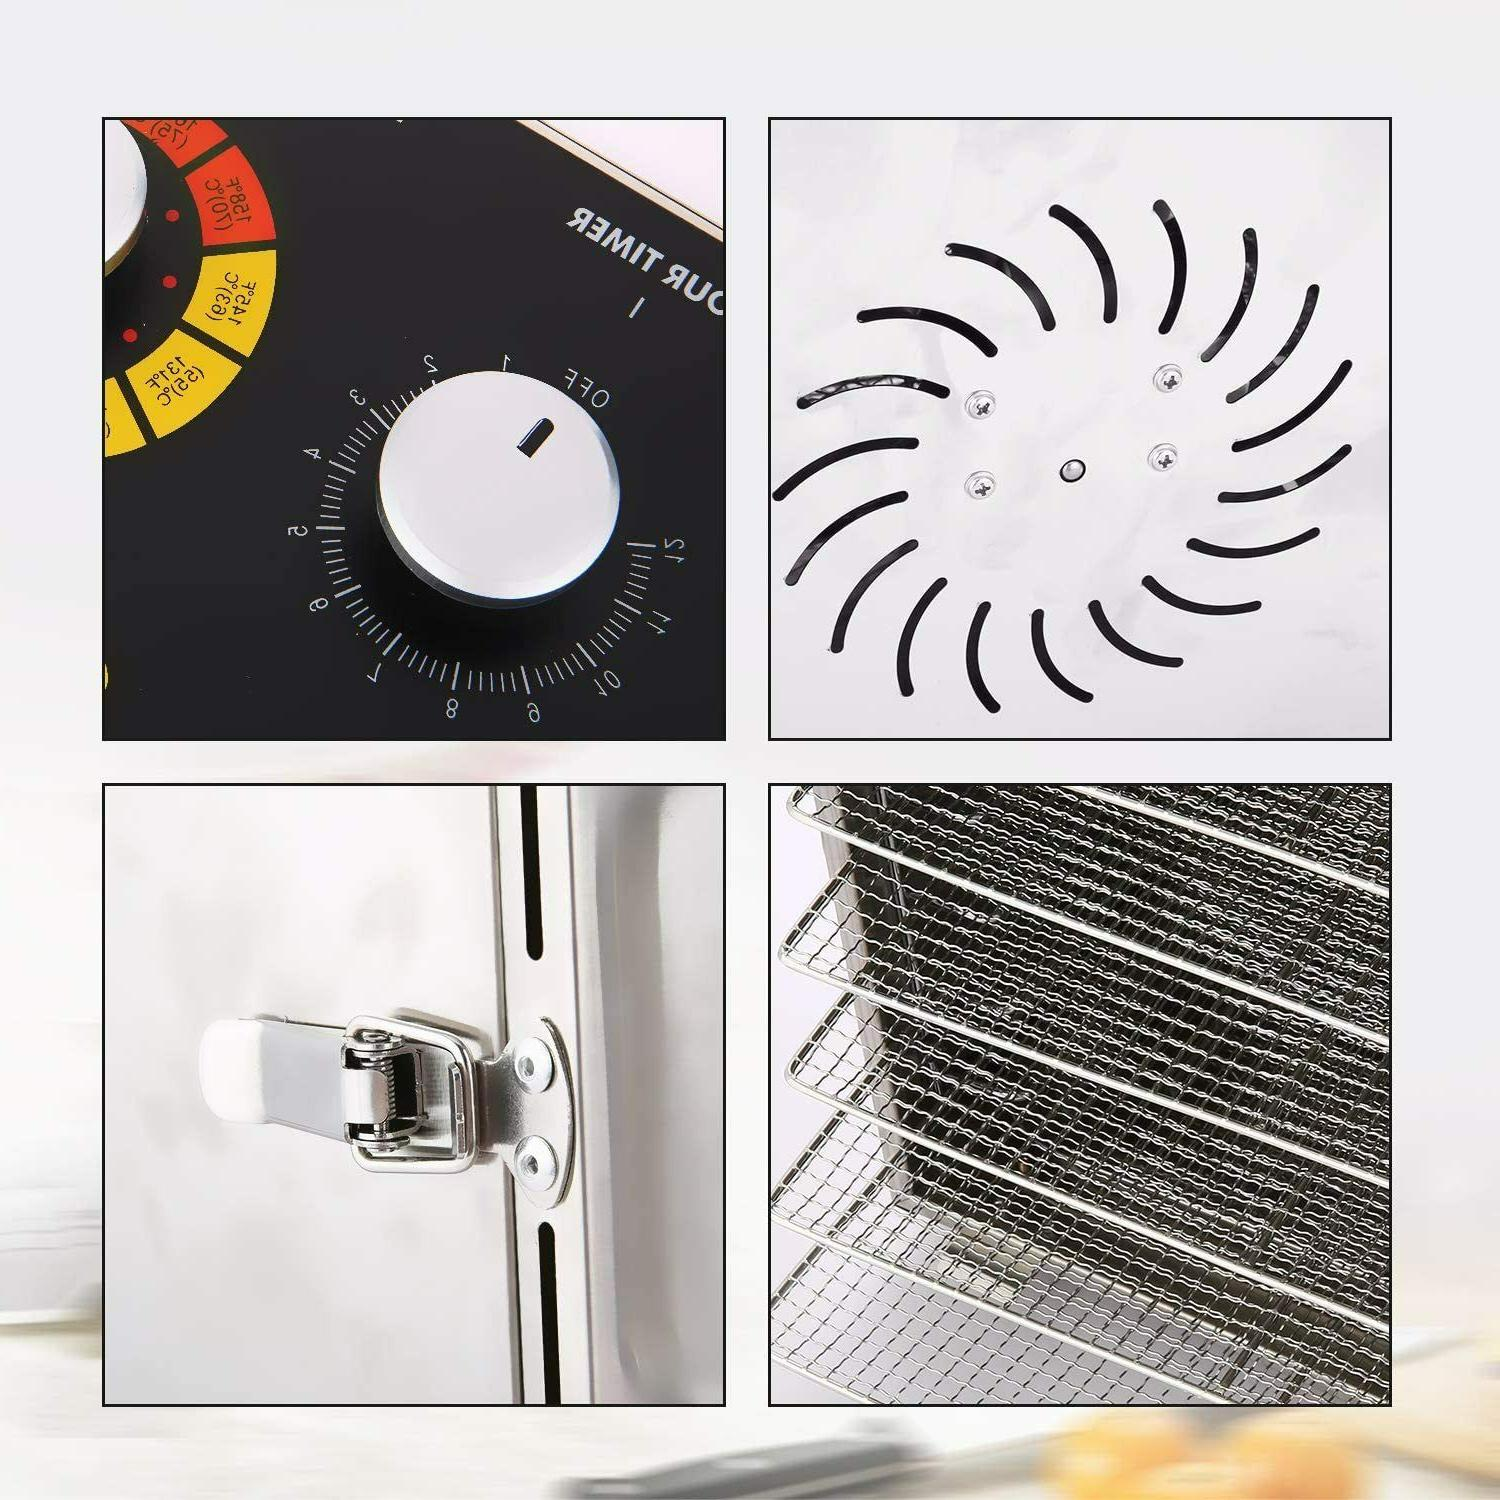 6 Food Dehydrator Machine Stainless